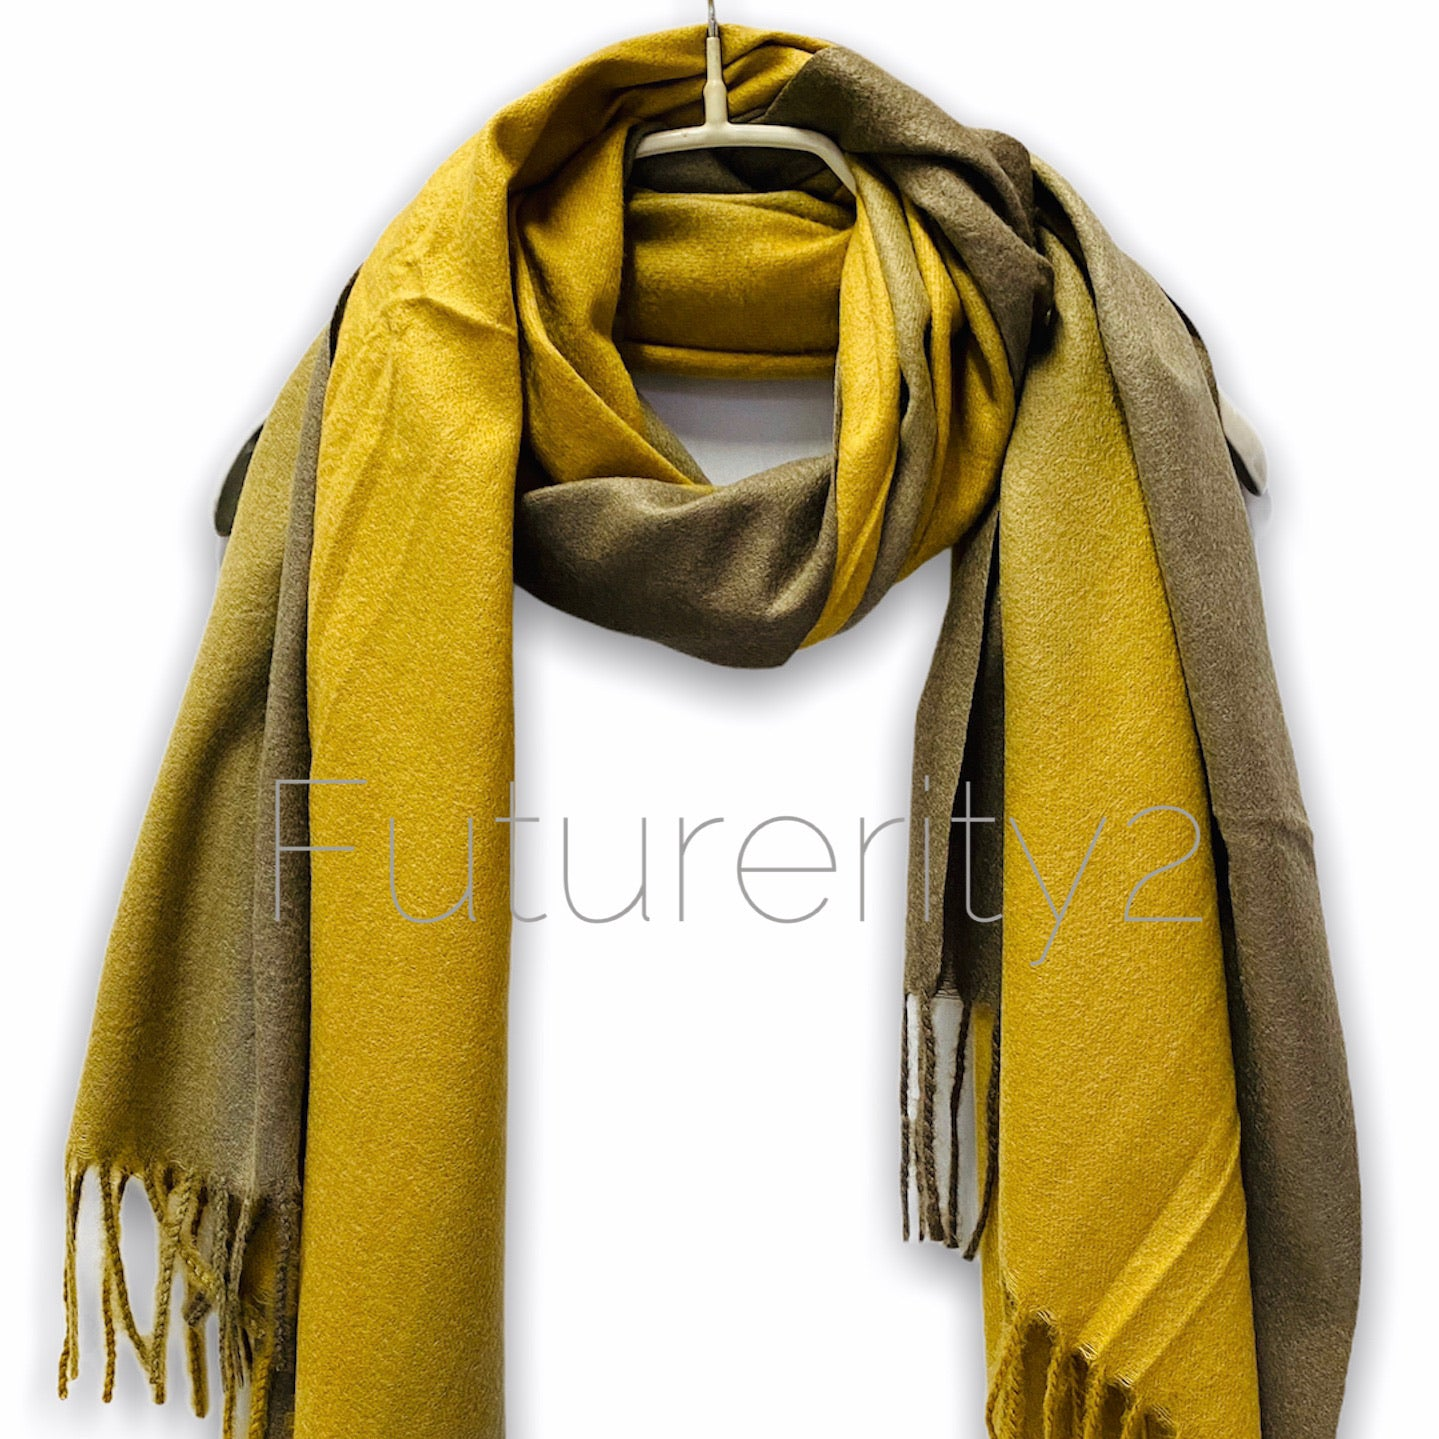 Two Toned Brown Mustard Yellow Scarf/Cashmere Scarf/Autumn Winter Scarf/Gifts For Mother/Gifts For Her/Scarf Women/Plain Scarf/Birthday Gift